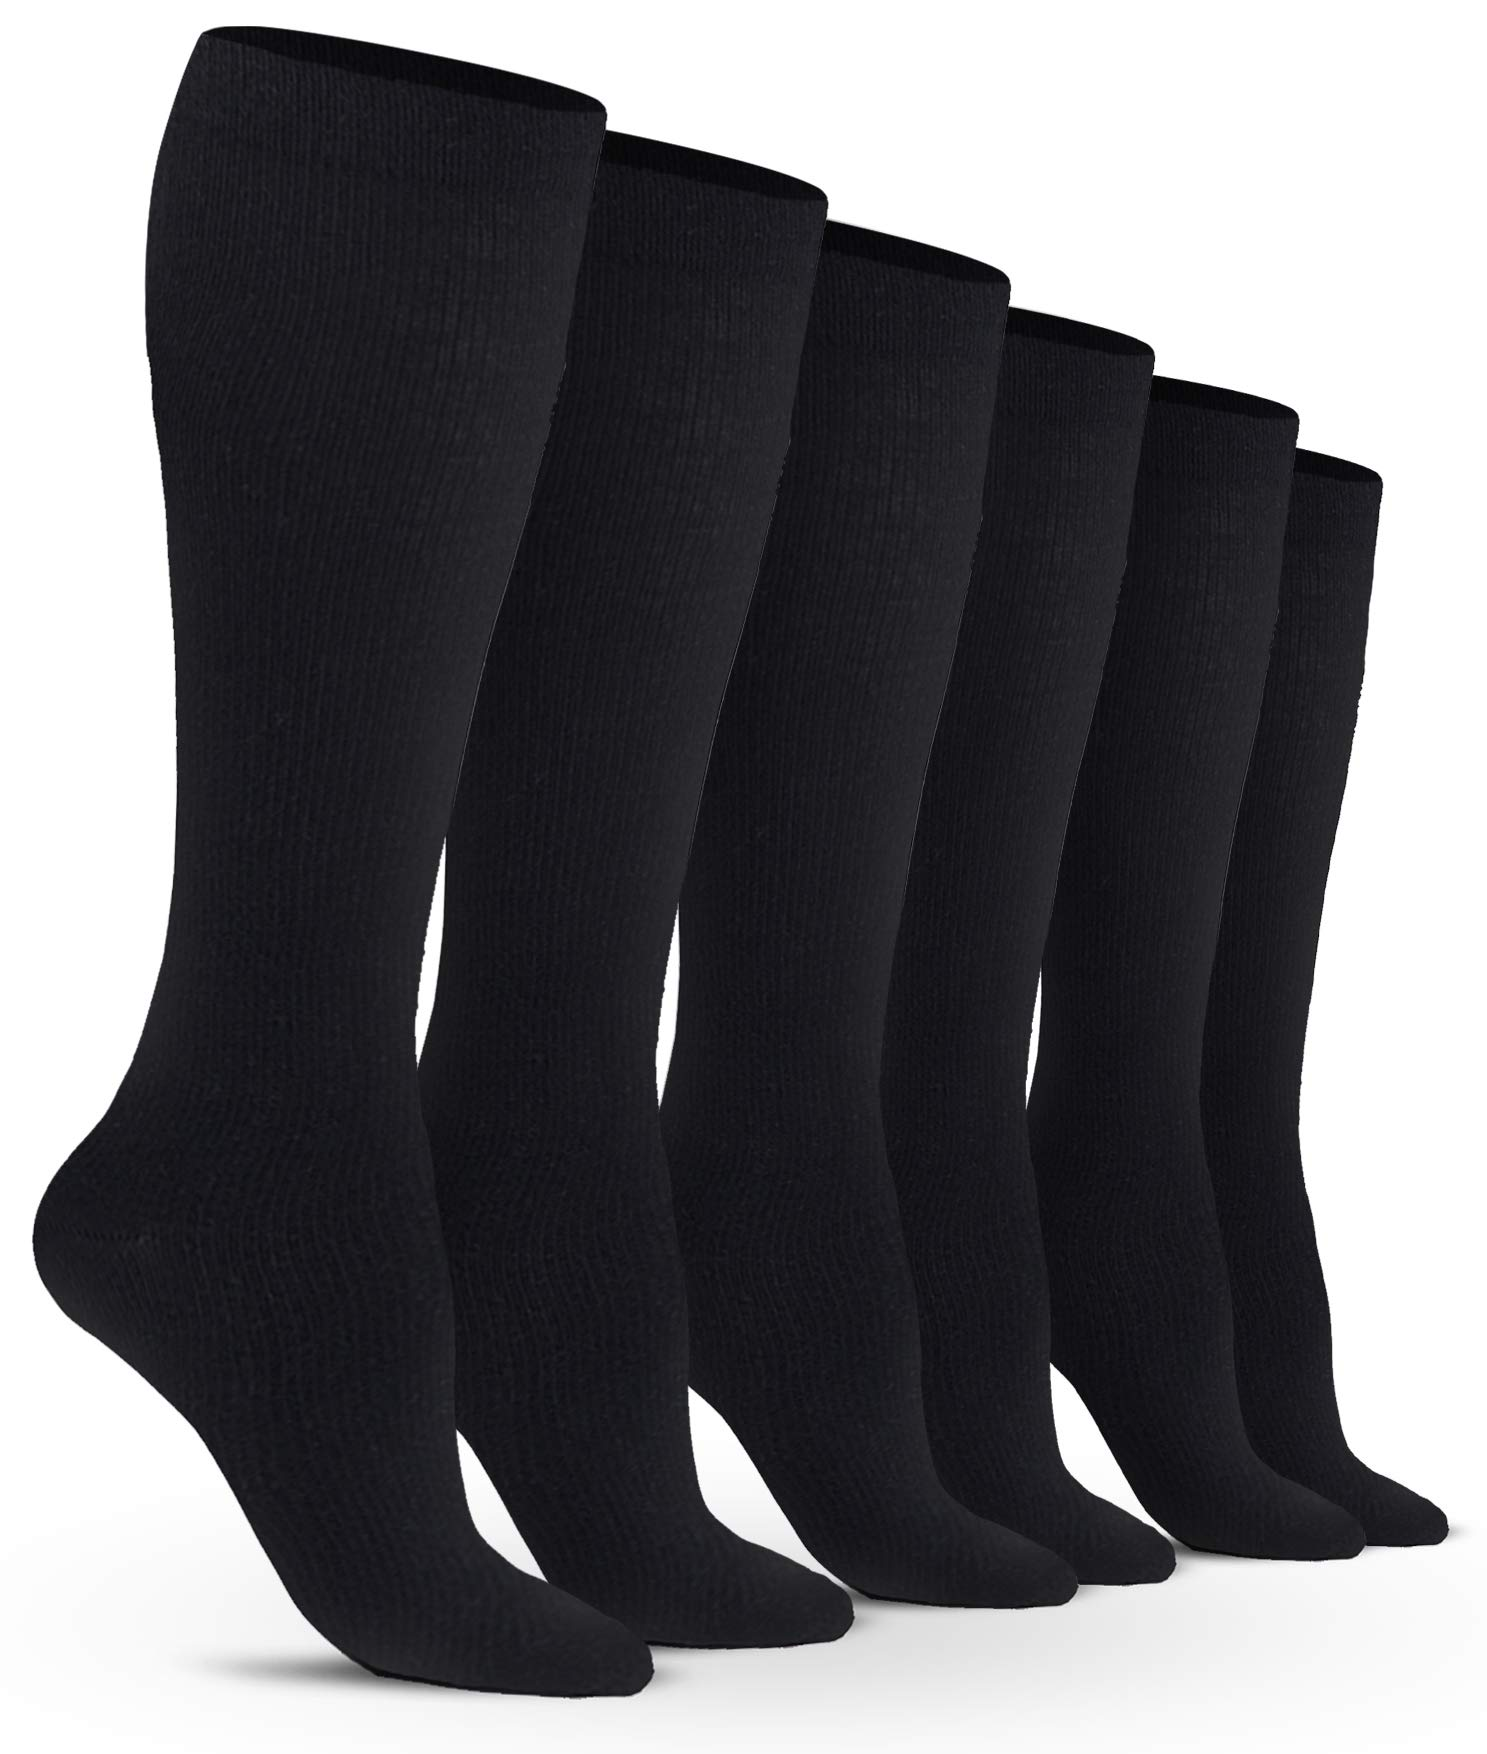 Women's Compression Socks (6 Pack) - S/M - Black - Graduated Muscle Support, Relief and Recovery. Great for Running, Medical, Athletic, Diabetic, Travel, Pregnancy, Nursing (8-15 mmHg)